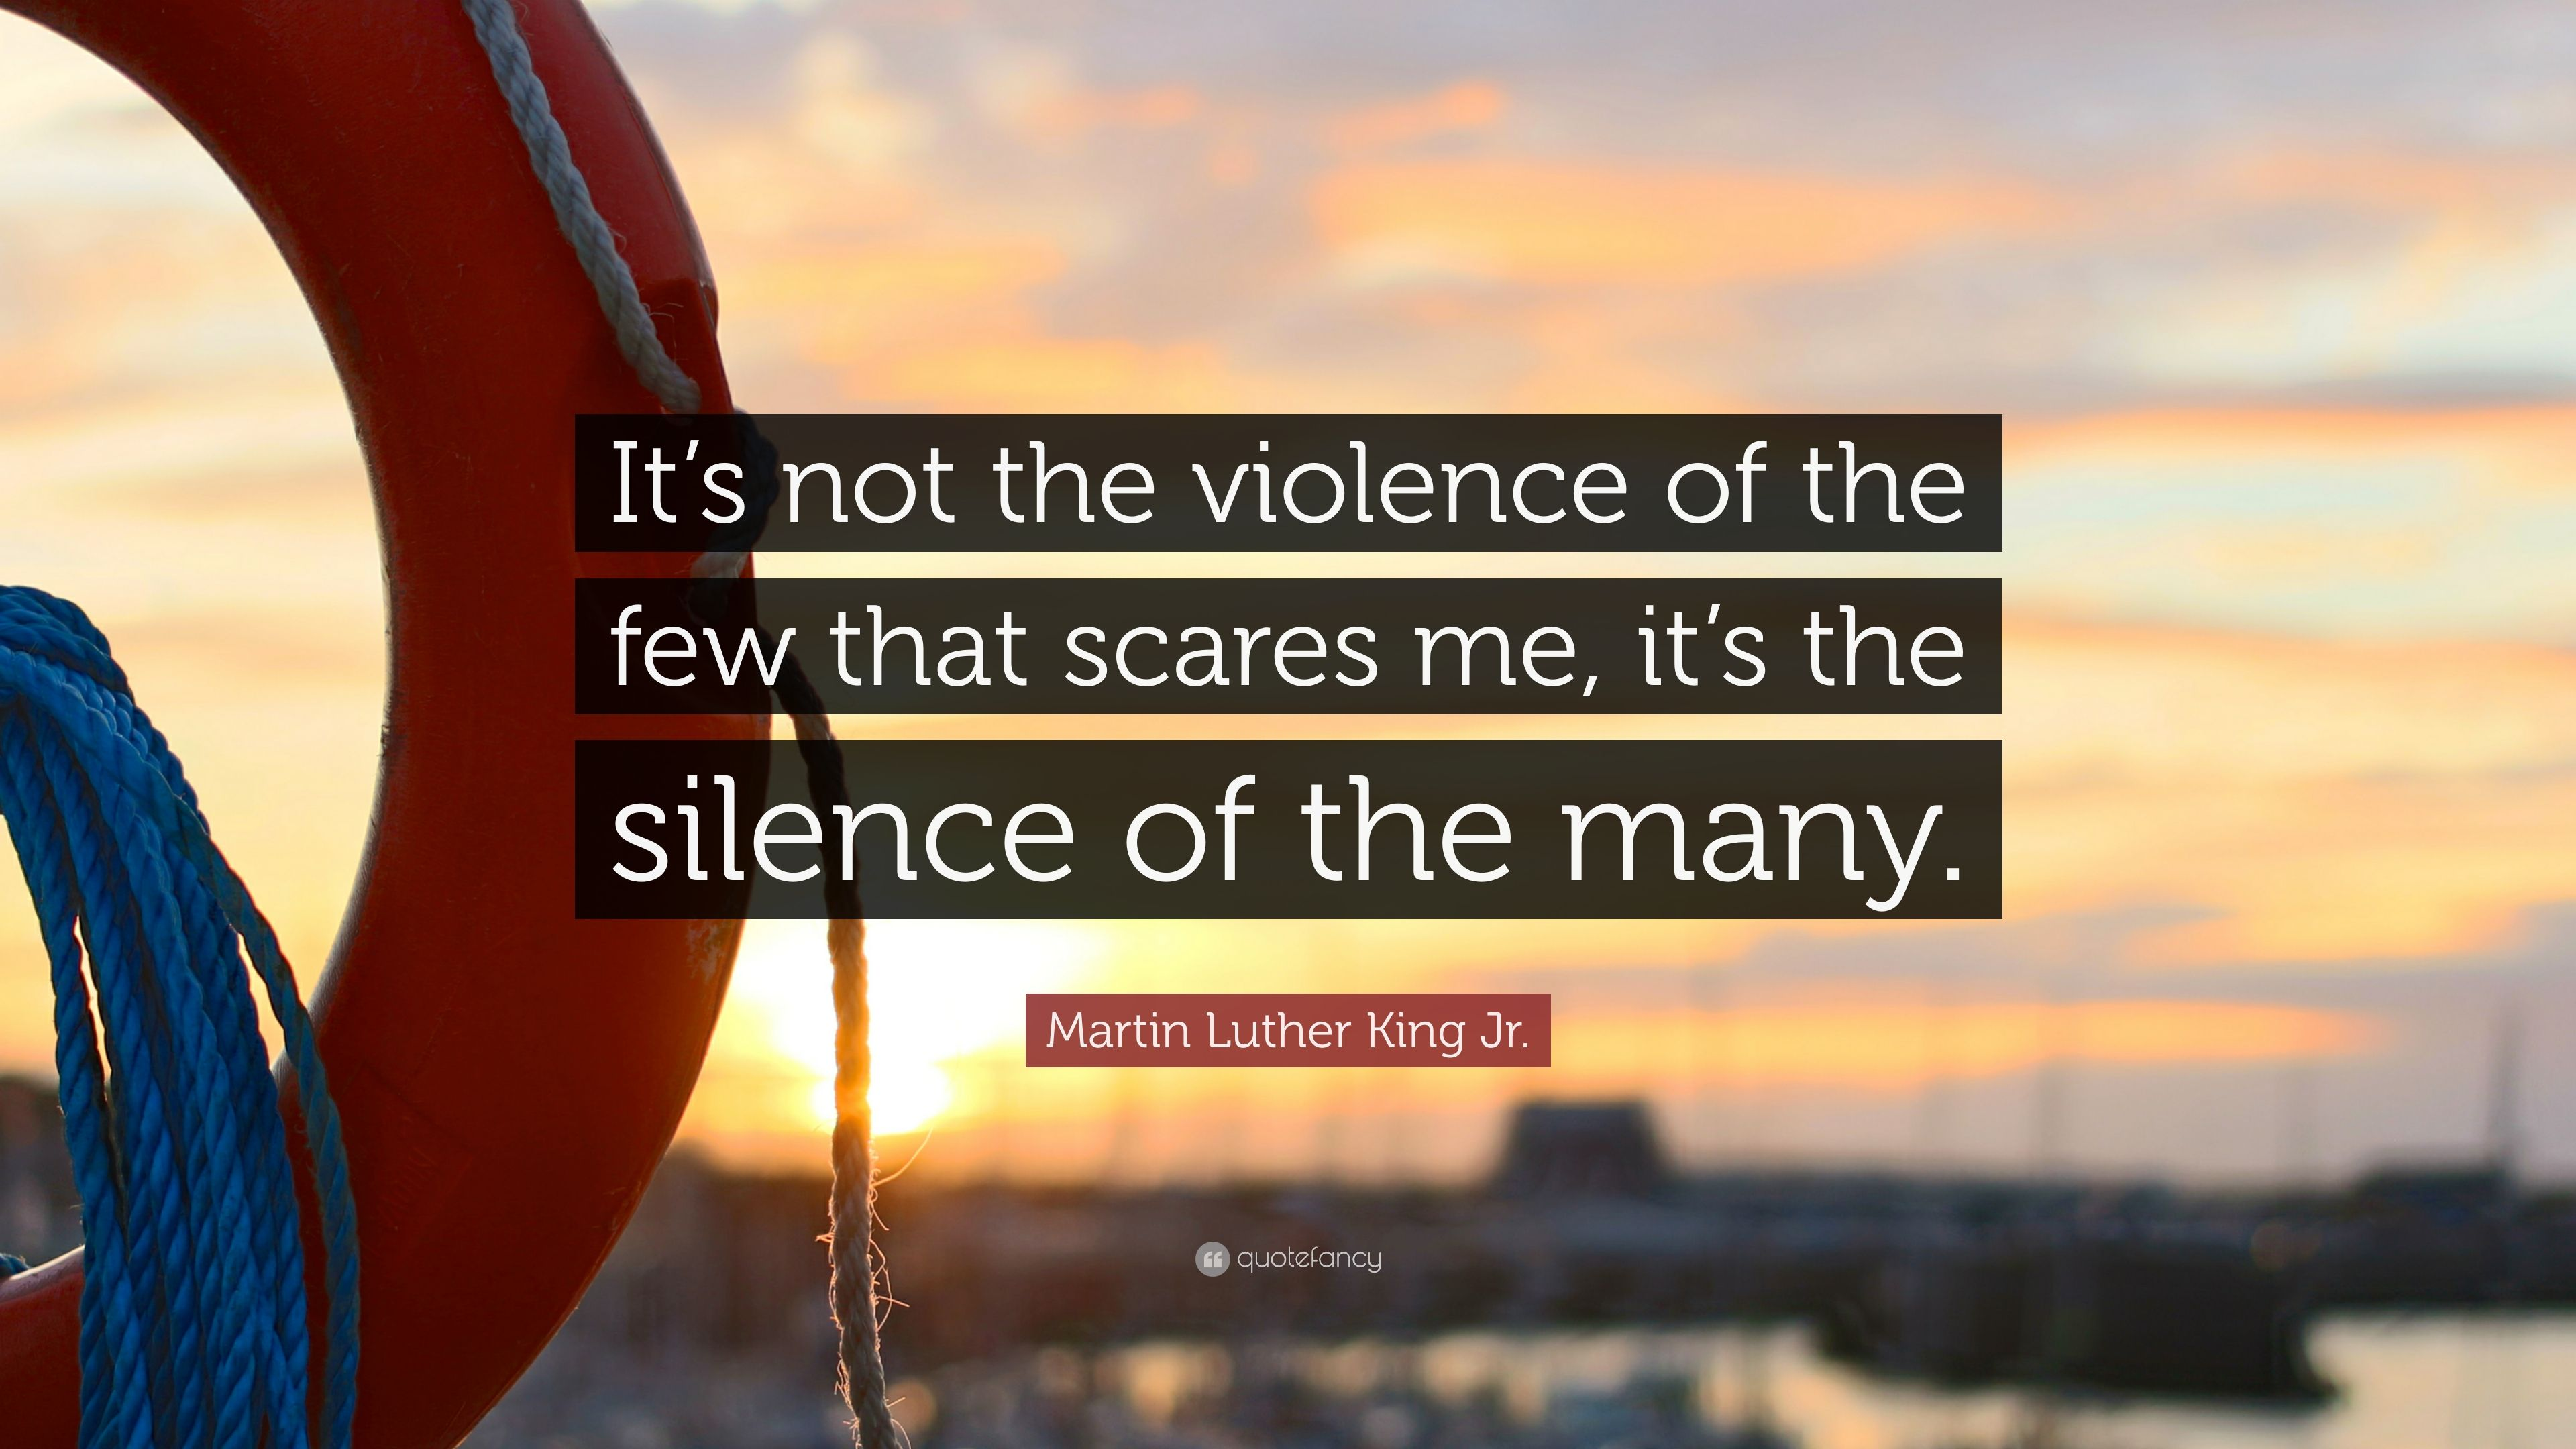 """Martin Luther King Jr. Quote: """"It's not the violence of the few that scares me. it's the silence of the many."""" (7 wallpapers) - Quotefancy"""